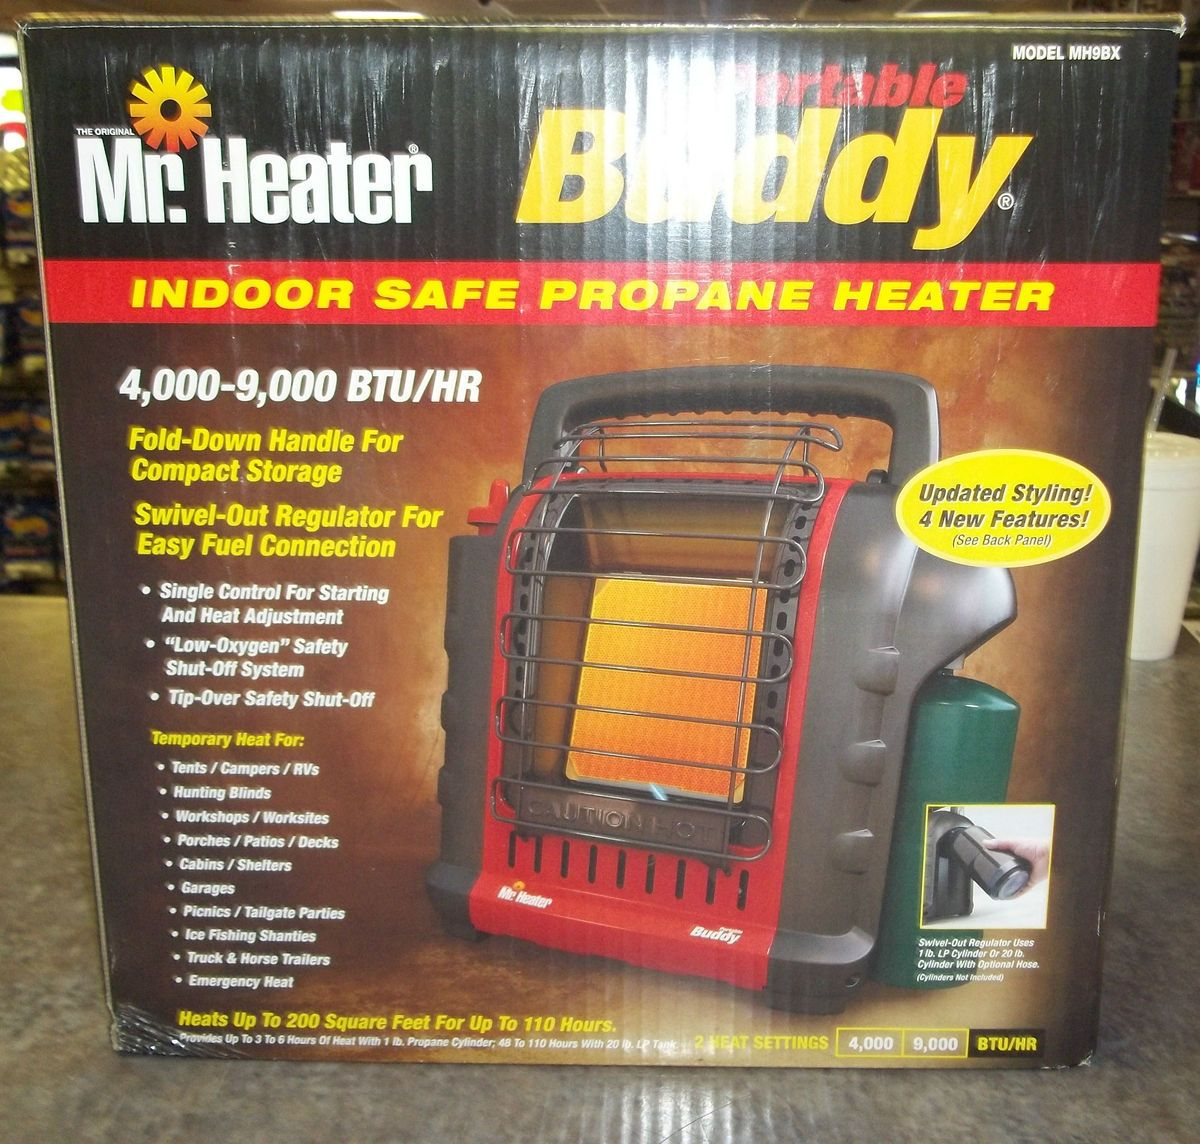 Mr Heater Portable Buddy Indoor Safe Propane Heater New